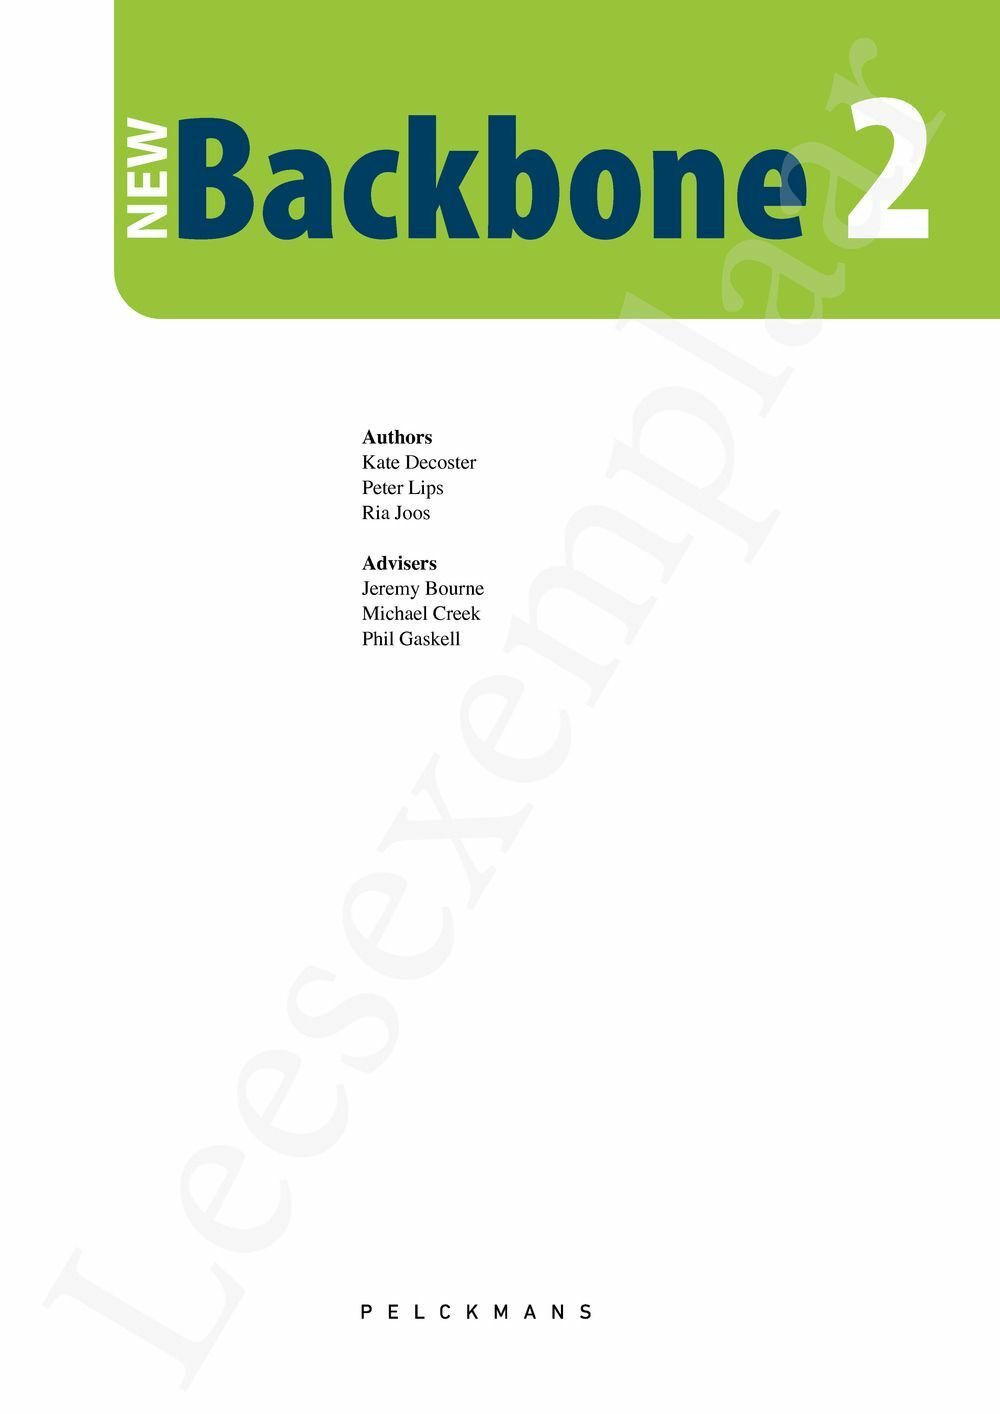 Preview: New Backbone 2 Leerwerkboek